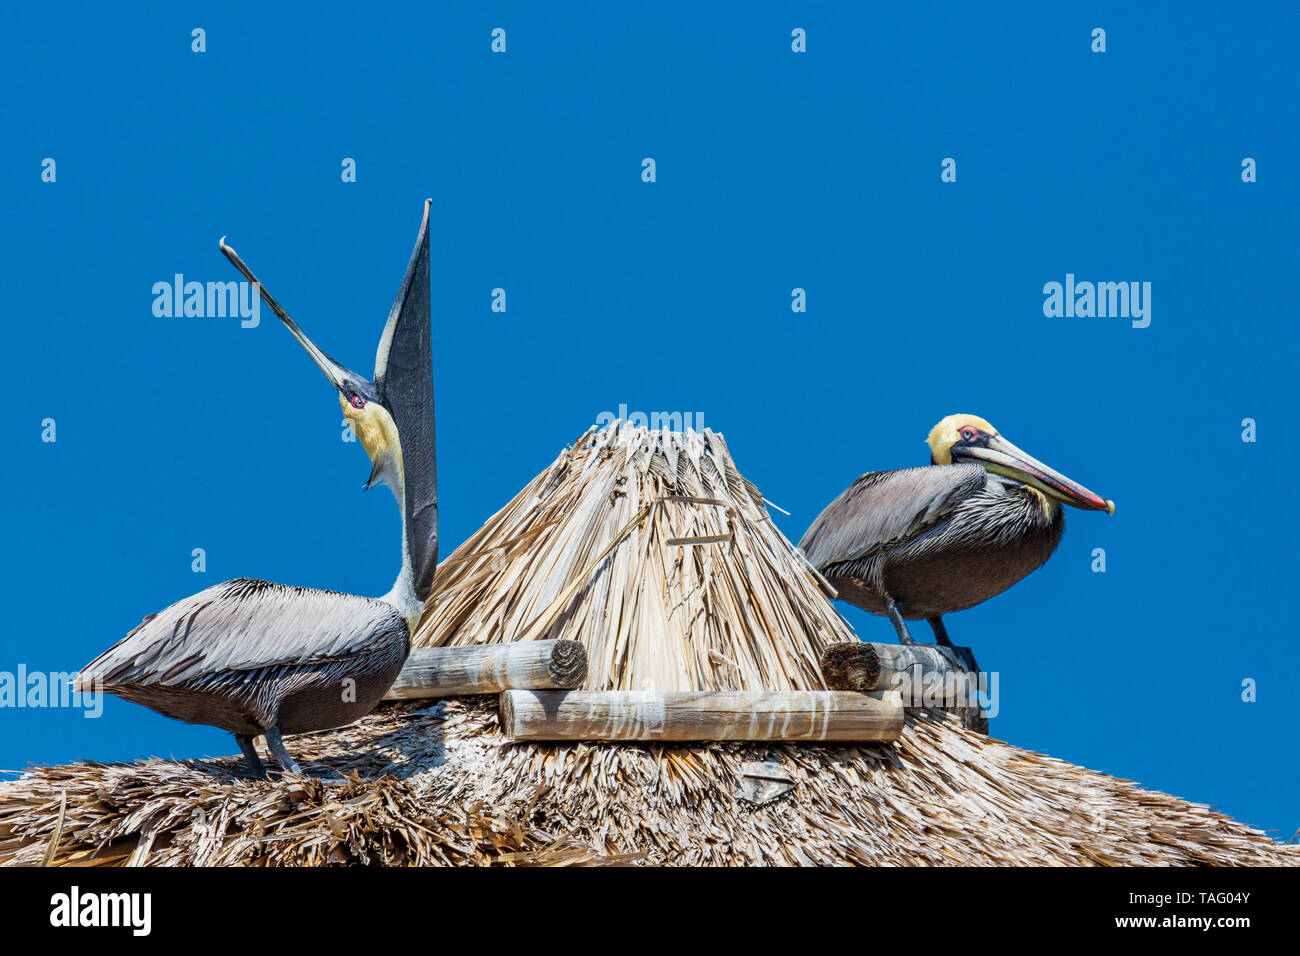 Brown pelican 5Pelecanus occidentalis), Key West, Florida, USA - Stock Image